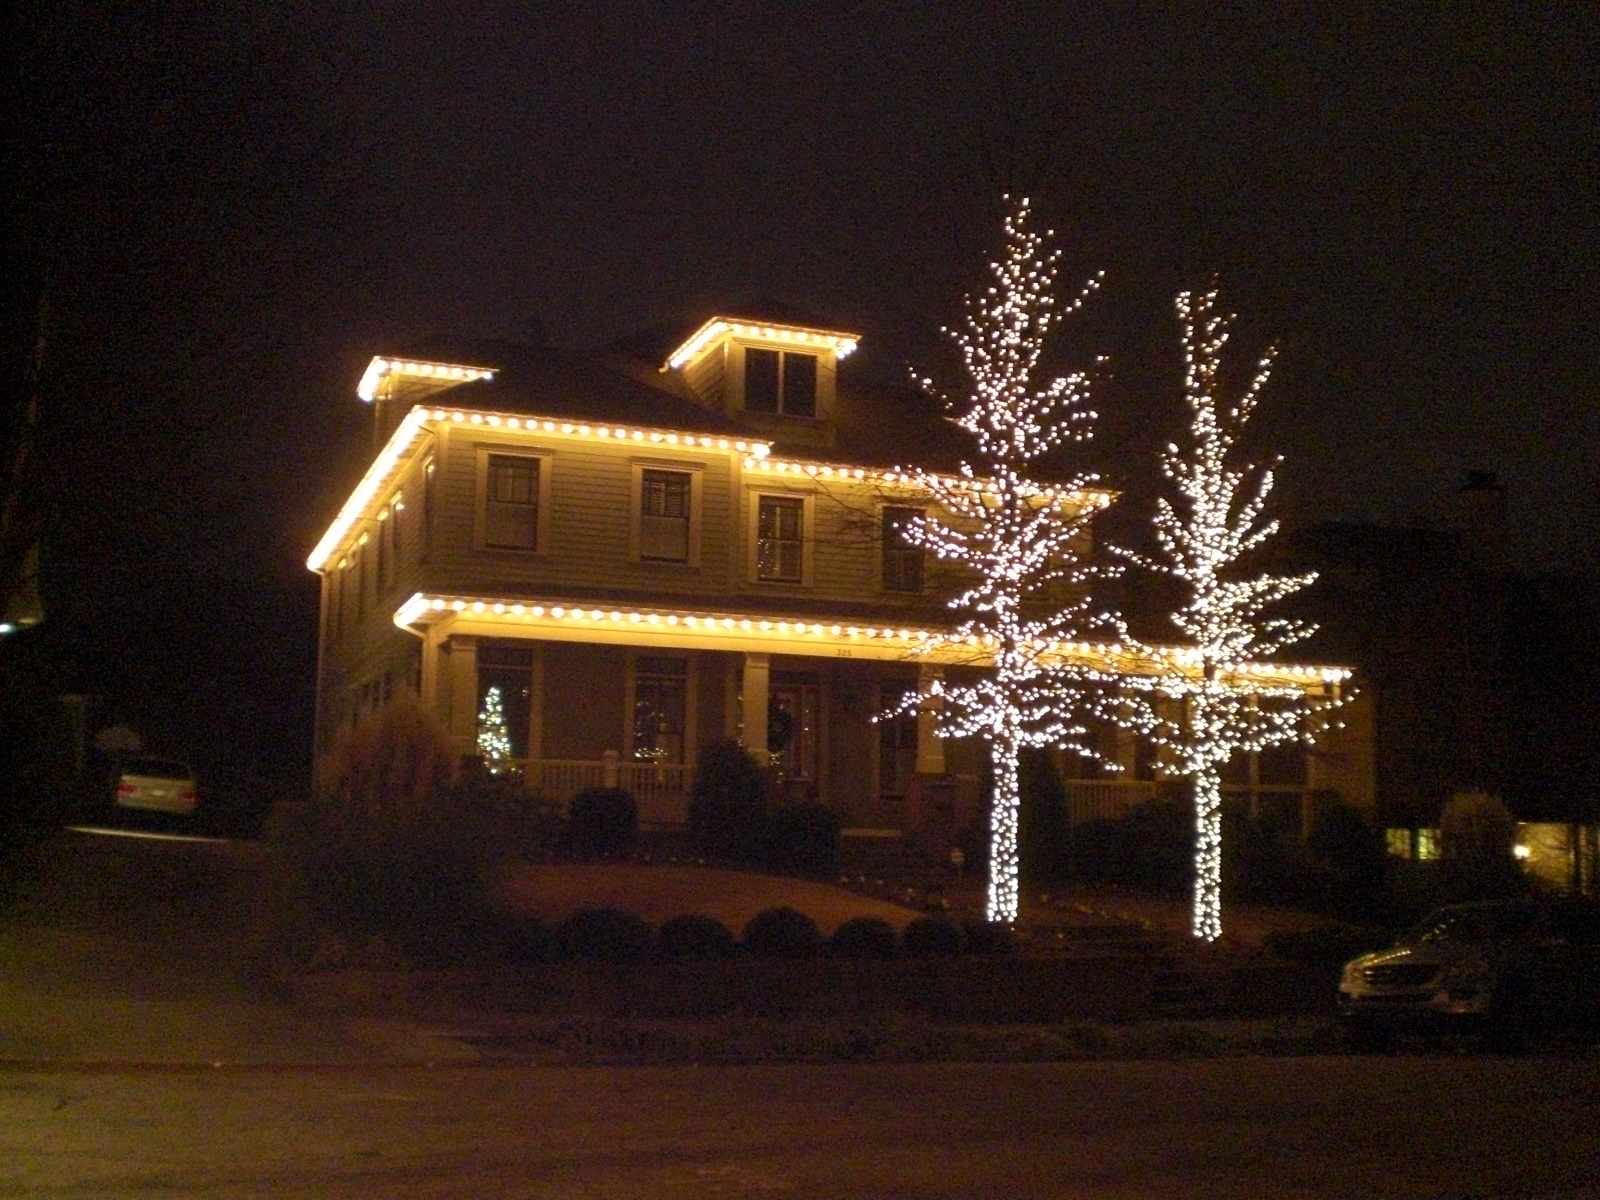 outdoor lights decor christmas exterior house - Christmas Lights Room Decor